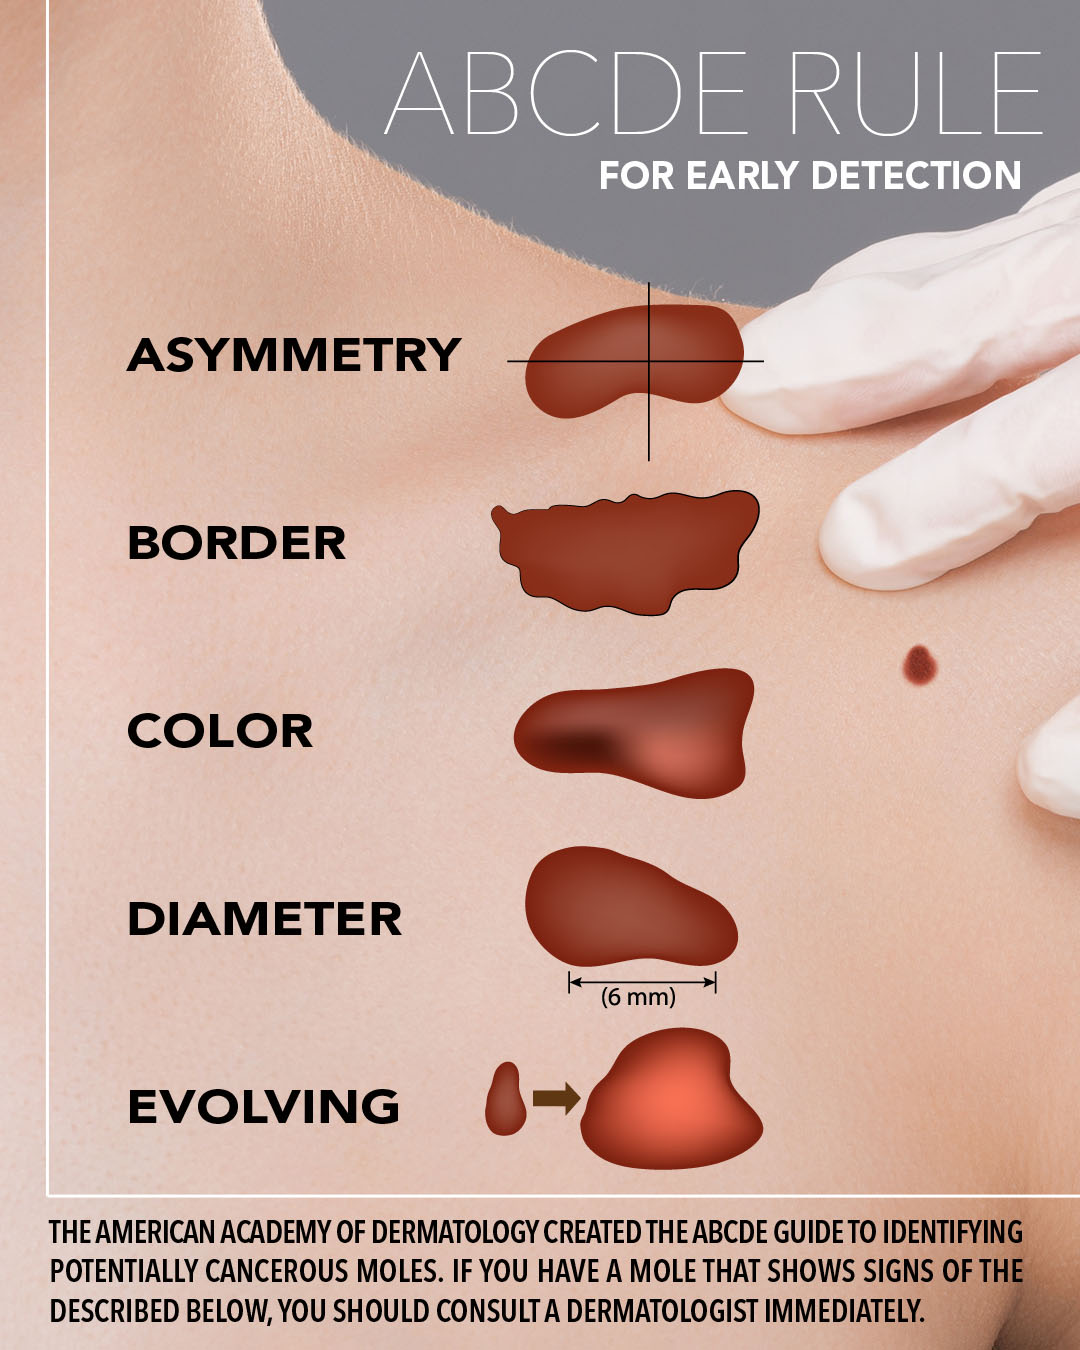 Follow the ABCDE Rule for early skin cancer detection